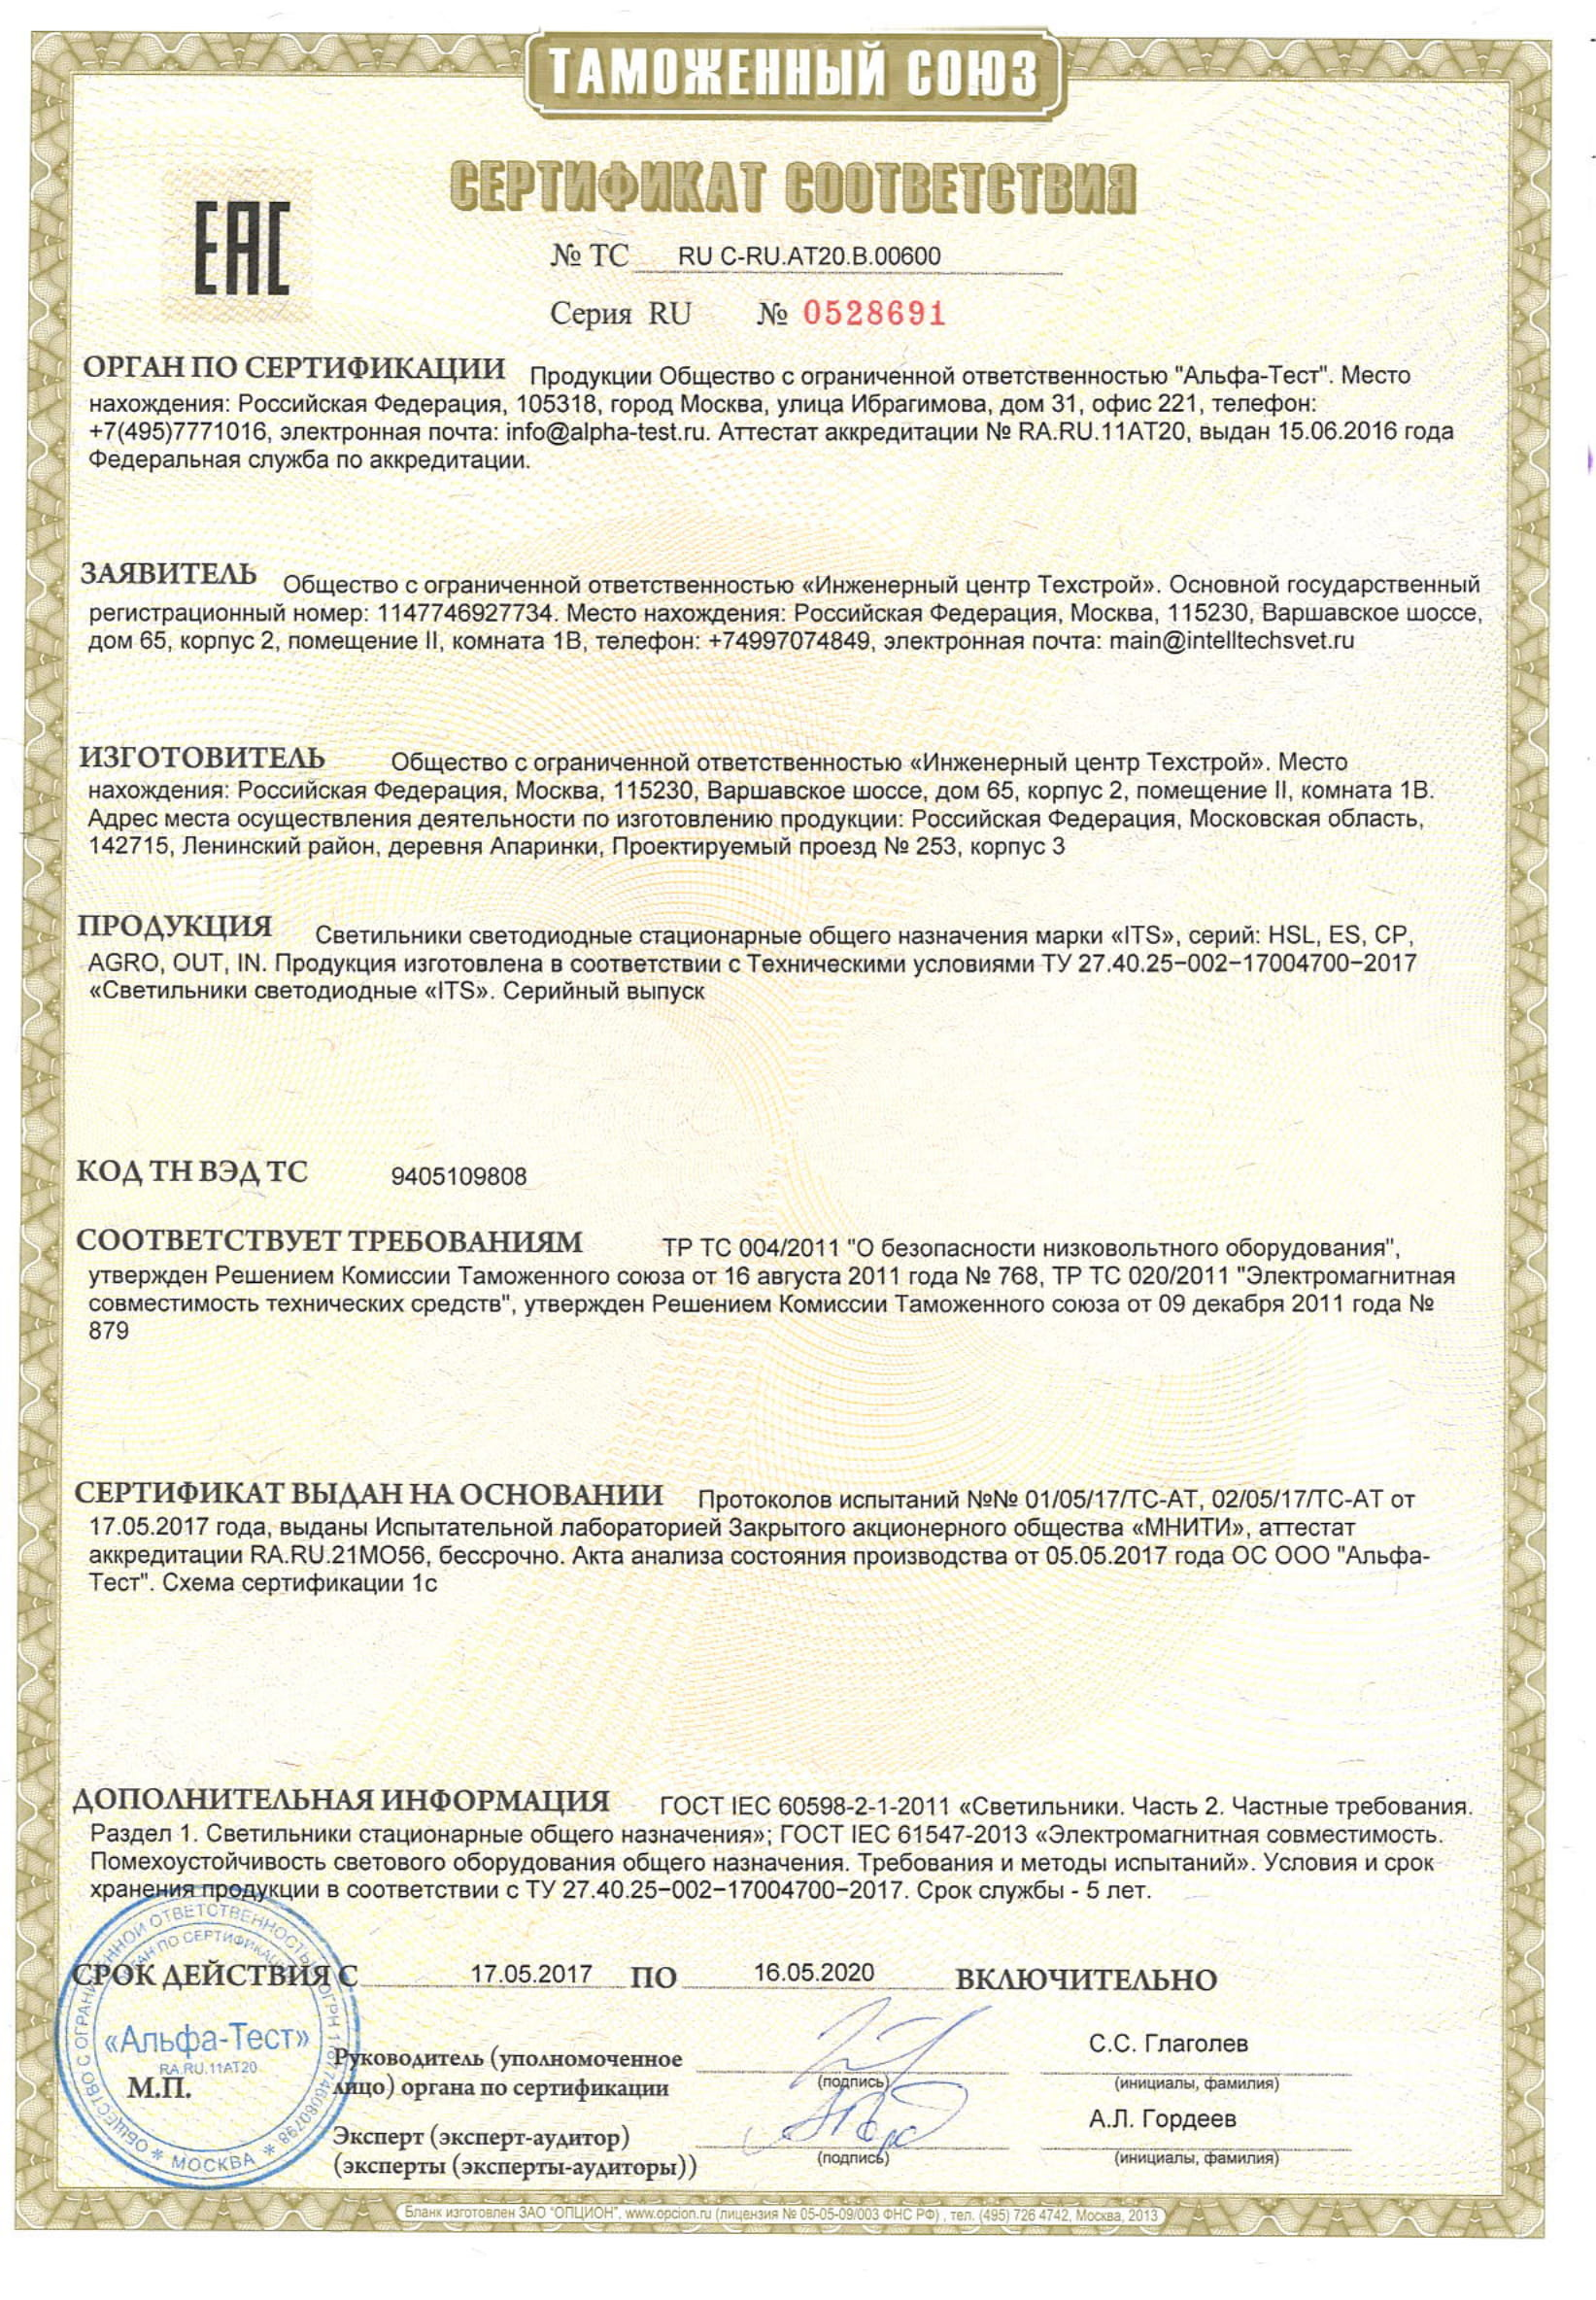 Certificate of conformity to Technical Specifications for ITS LED Illumination